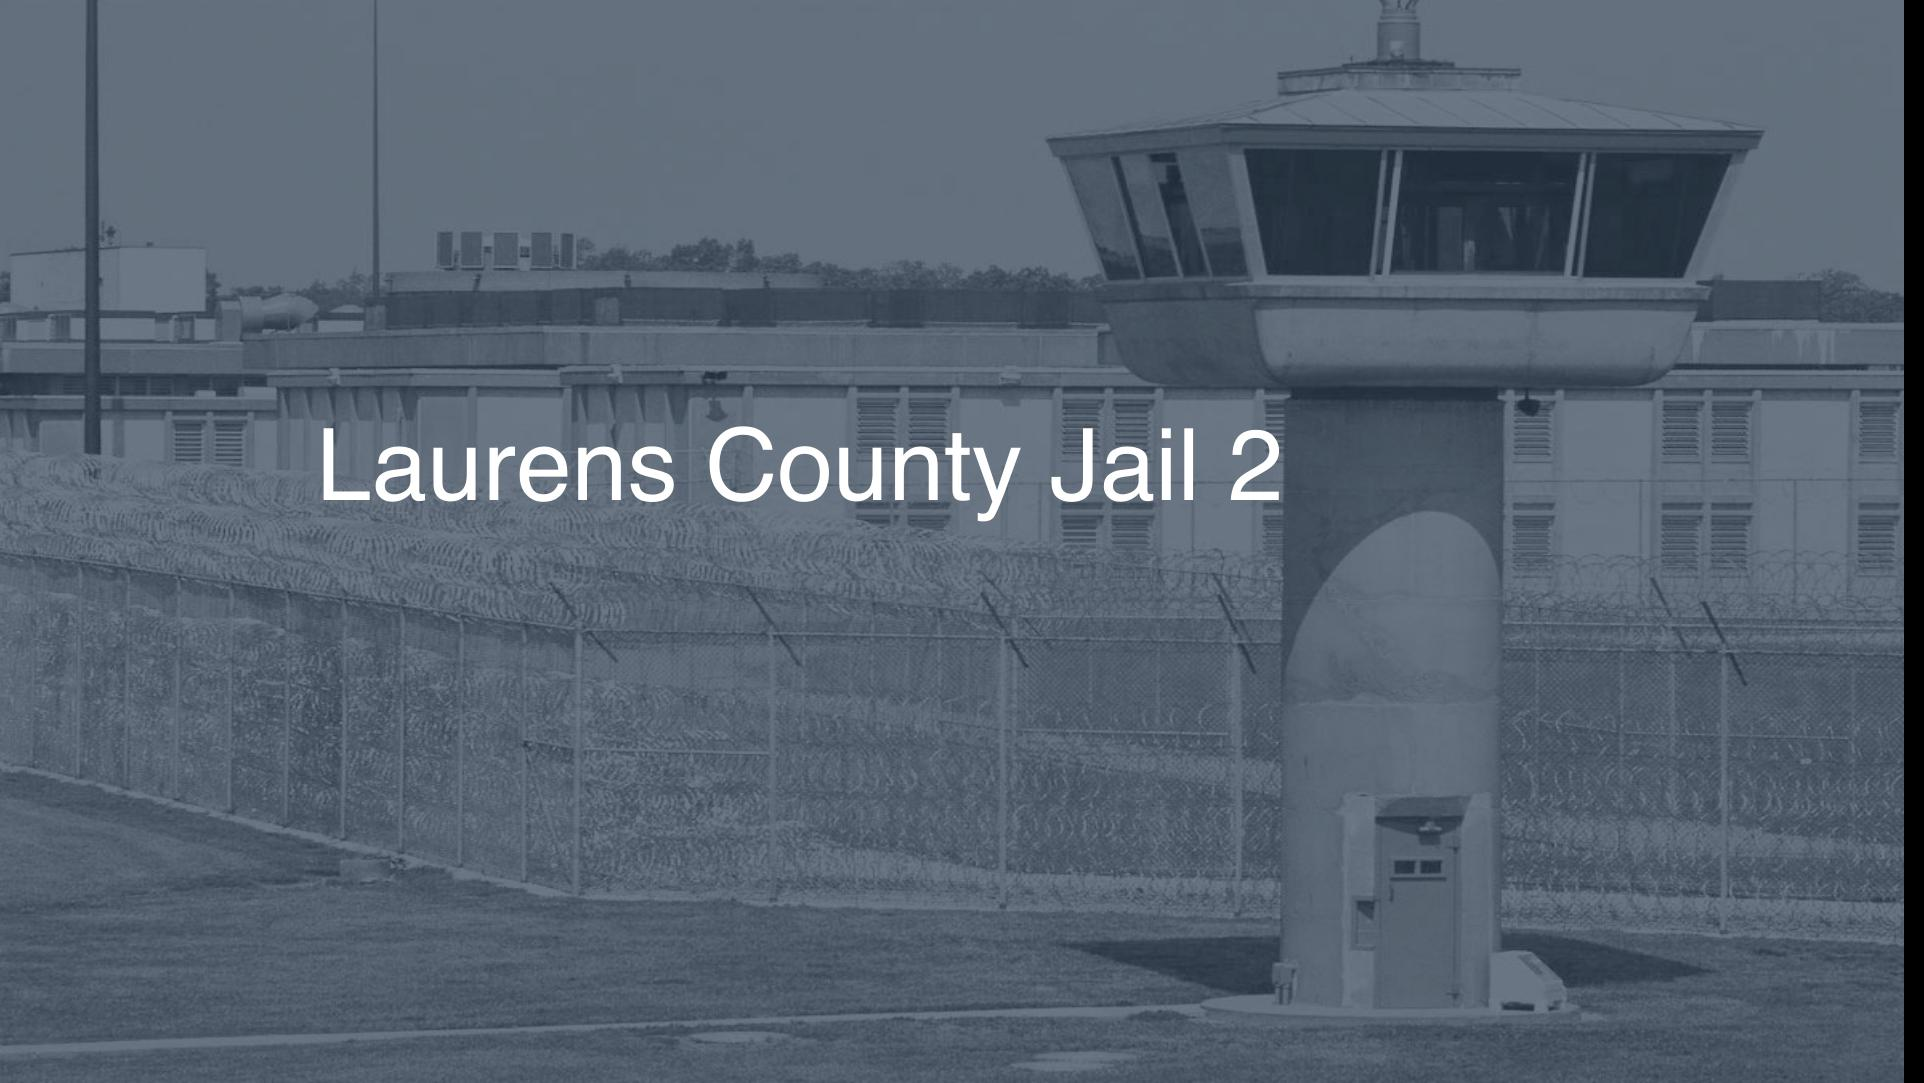 Laurens County Jail | Pigeonly - Inmate Search, Locate